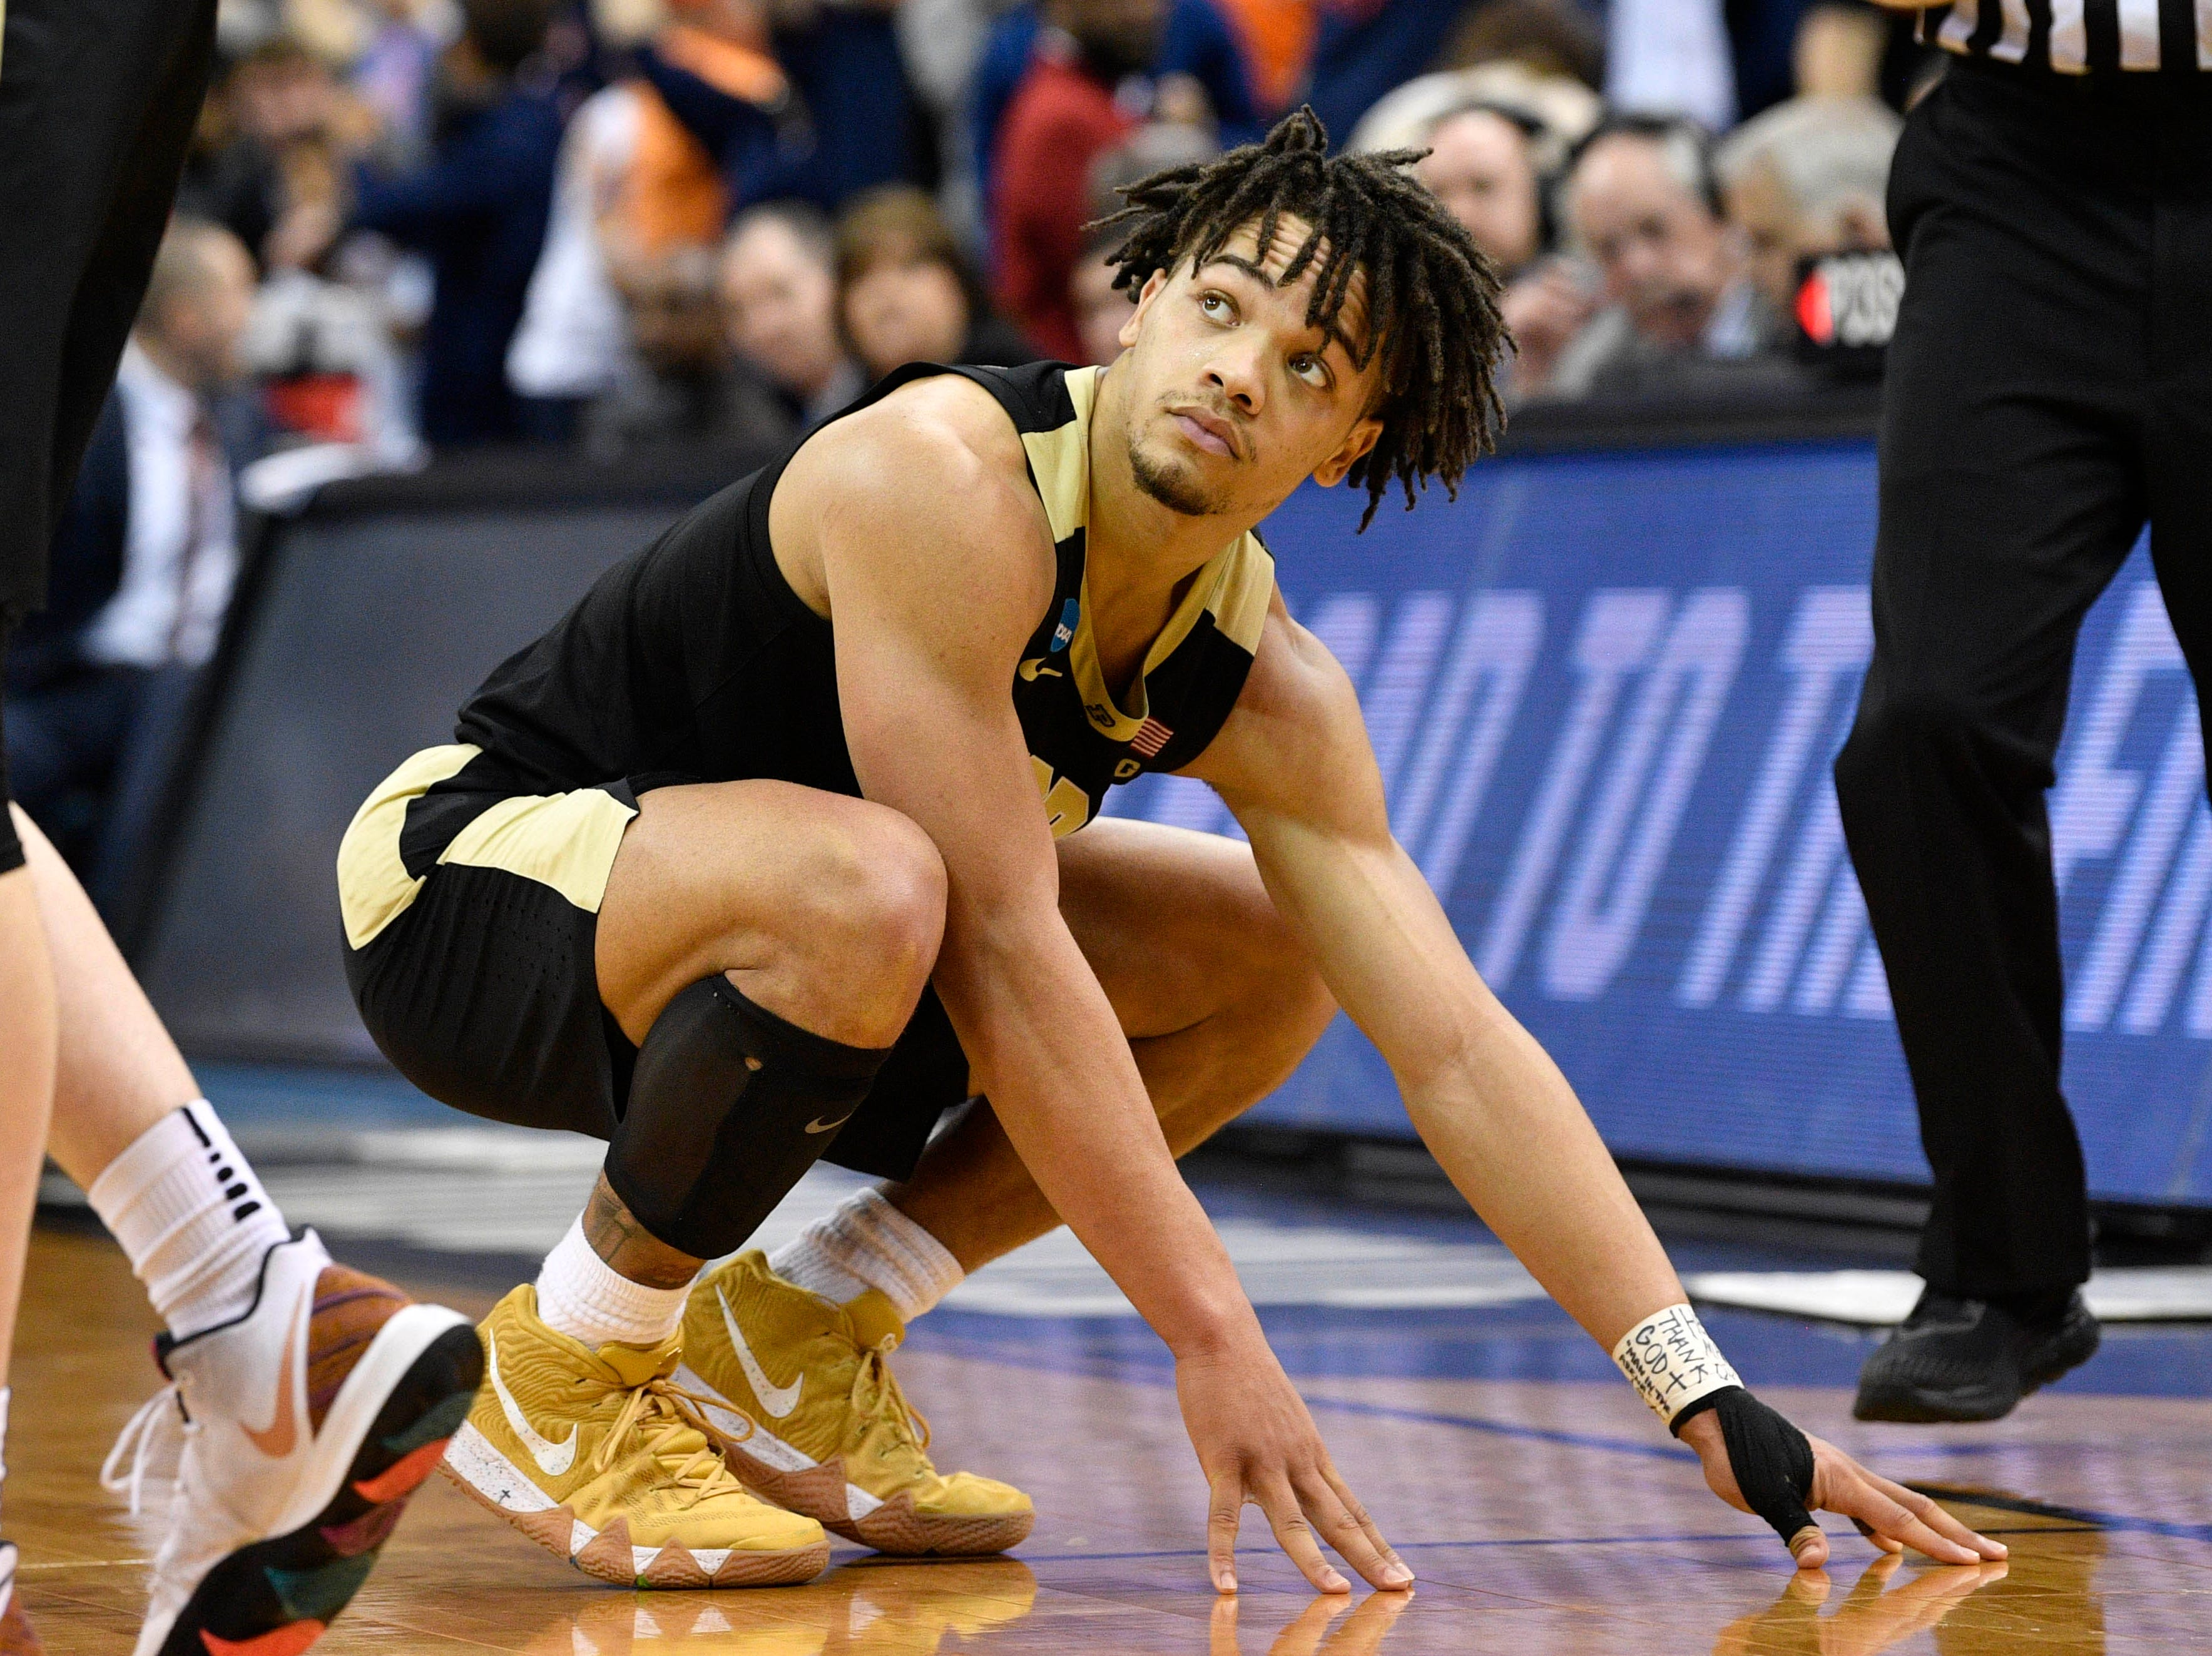 Mar 30, 2019; Louisville, KY, United States; Purdue Boilermakers guard Carsen Edwards (3) reacts during overtime in the championship game against the Virginia Cavaliers of the south regional of the 2019 NCAA Tournament at KFC Yum Center. Mandatory Credit: Jamie Rhodes-USA TODAY Sports